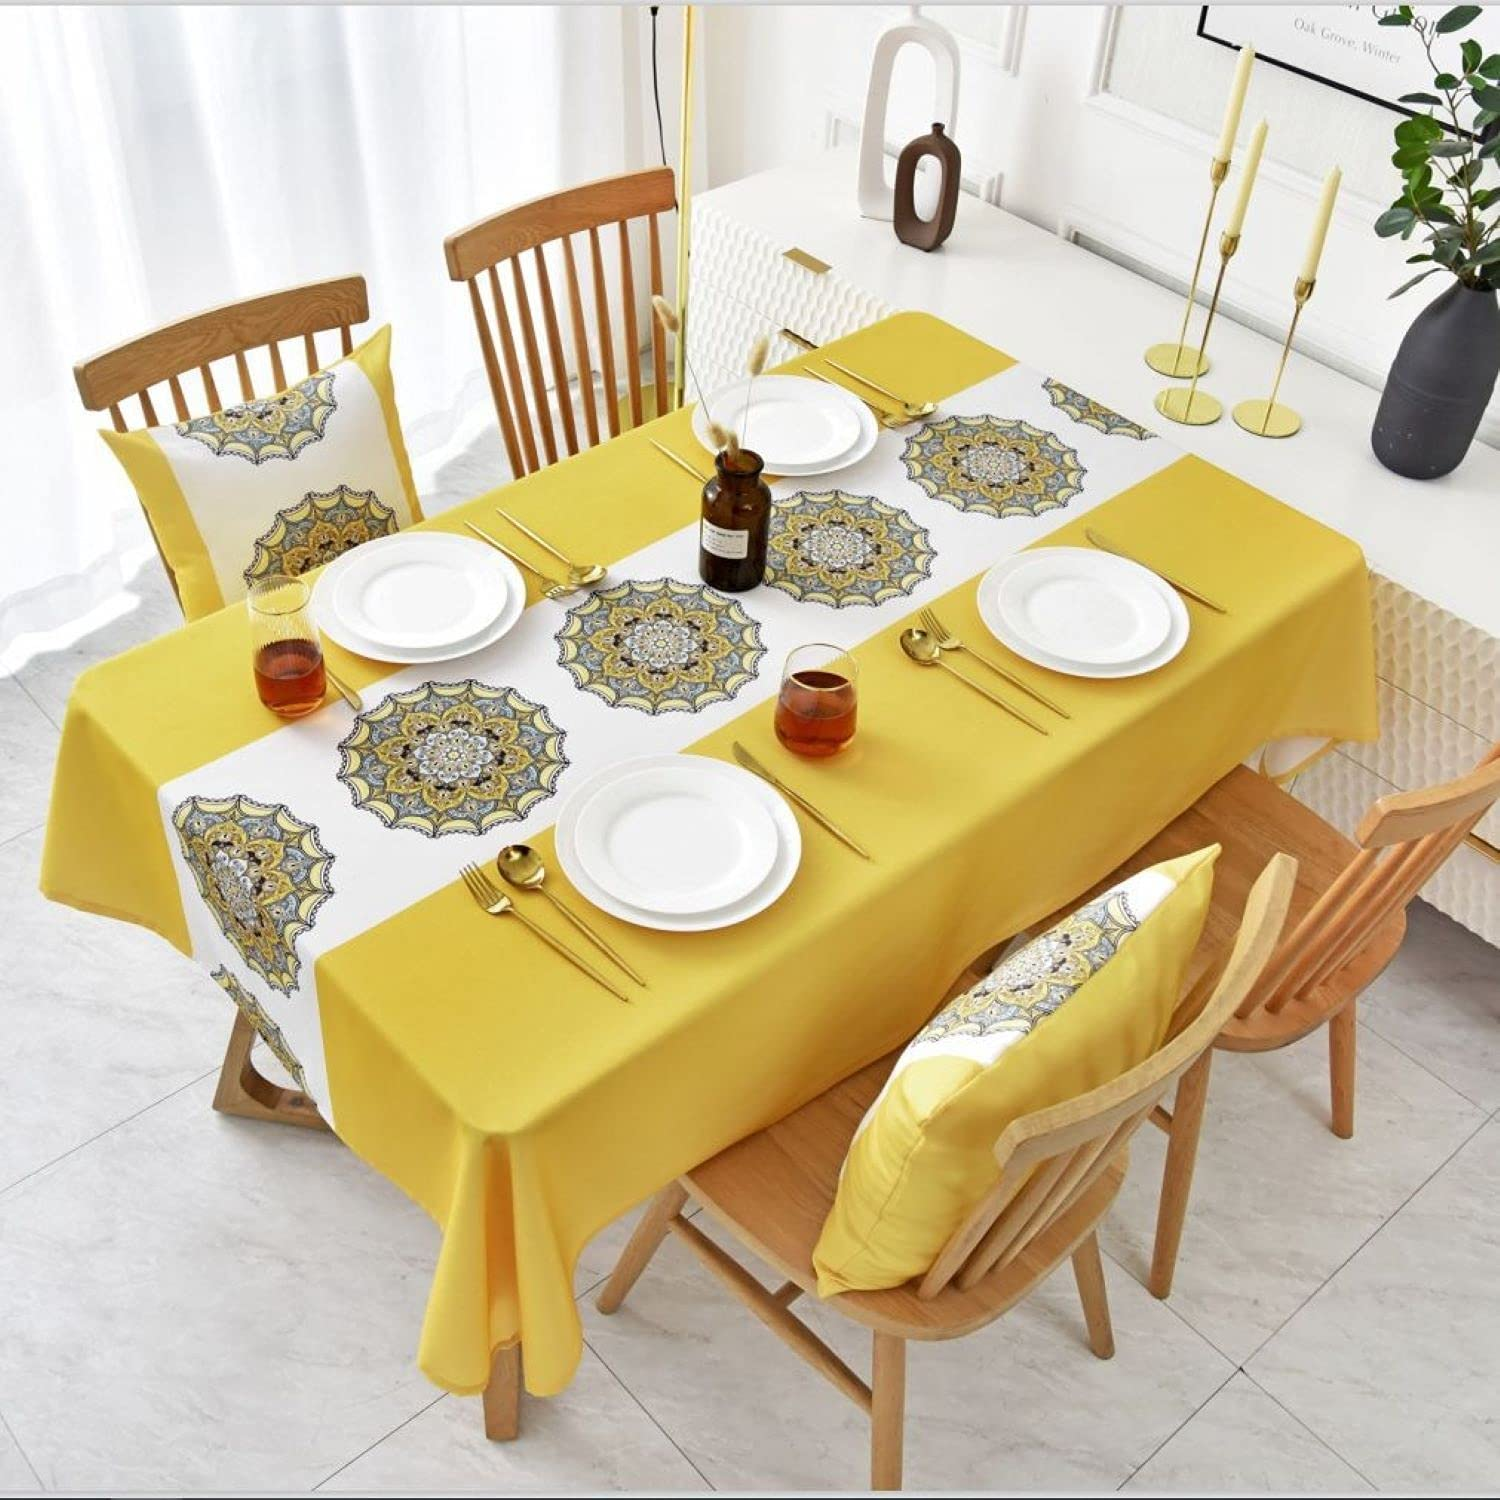 DMAMZ Tablecloth Waterproof Oilproof Rectangular Table Thick 買い物 信託 Cov